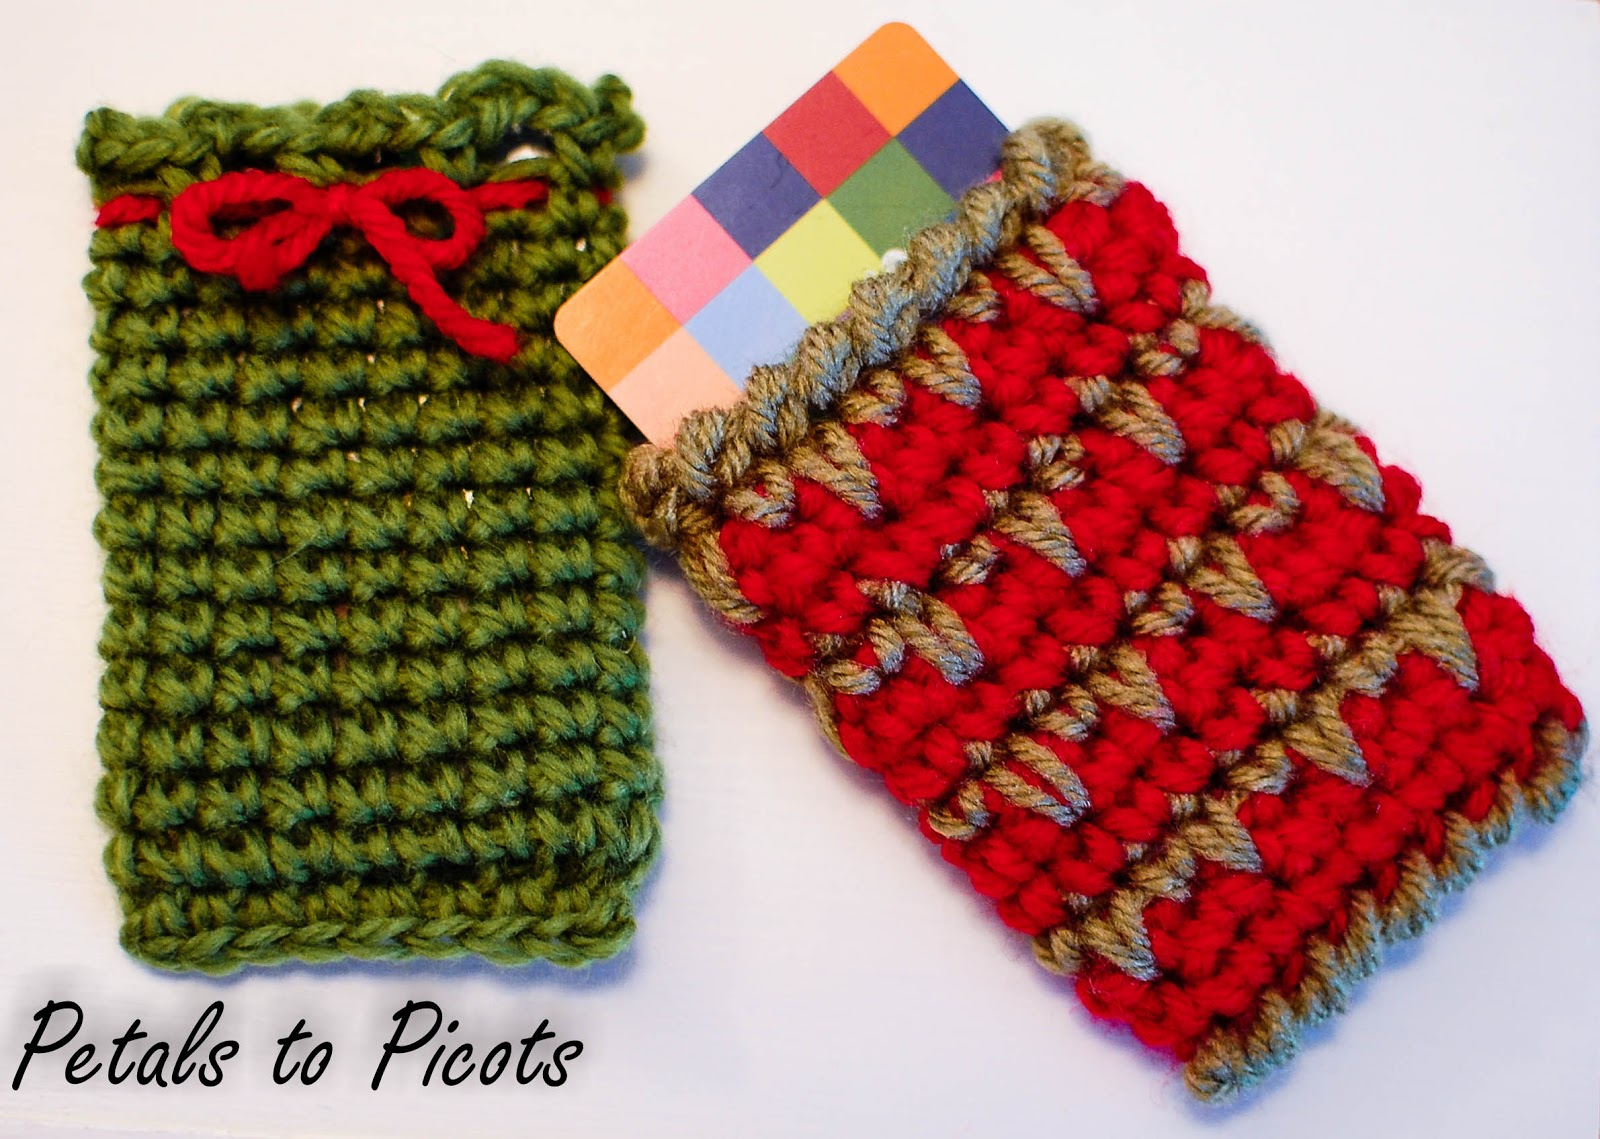 Free Crochet Pattern Gift Card : Crochet Gift Card Holder Pattern - Petals to Picots